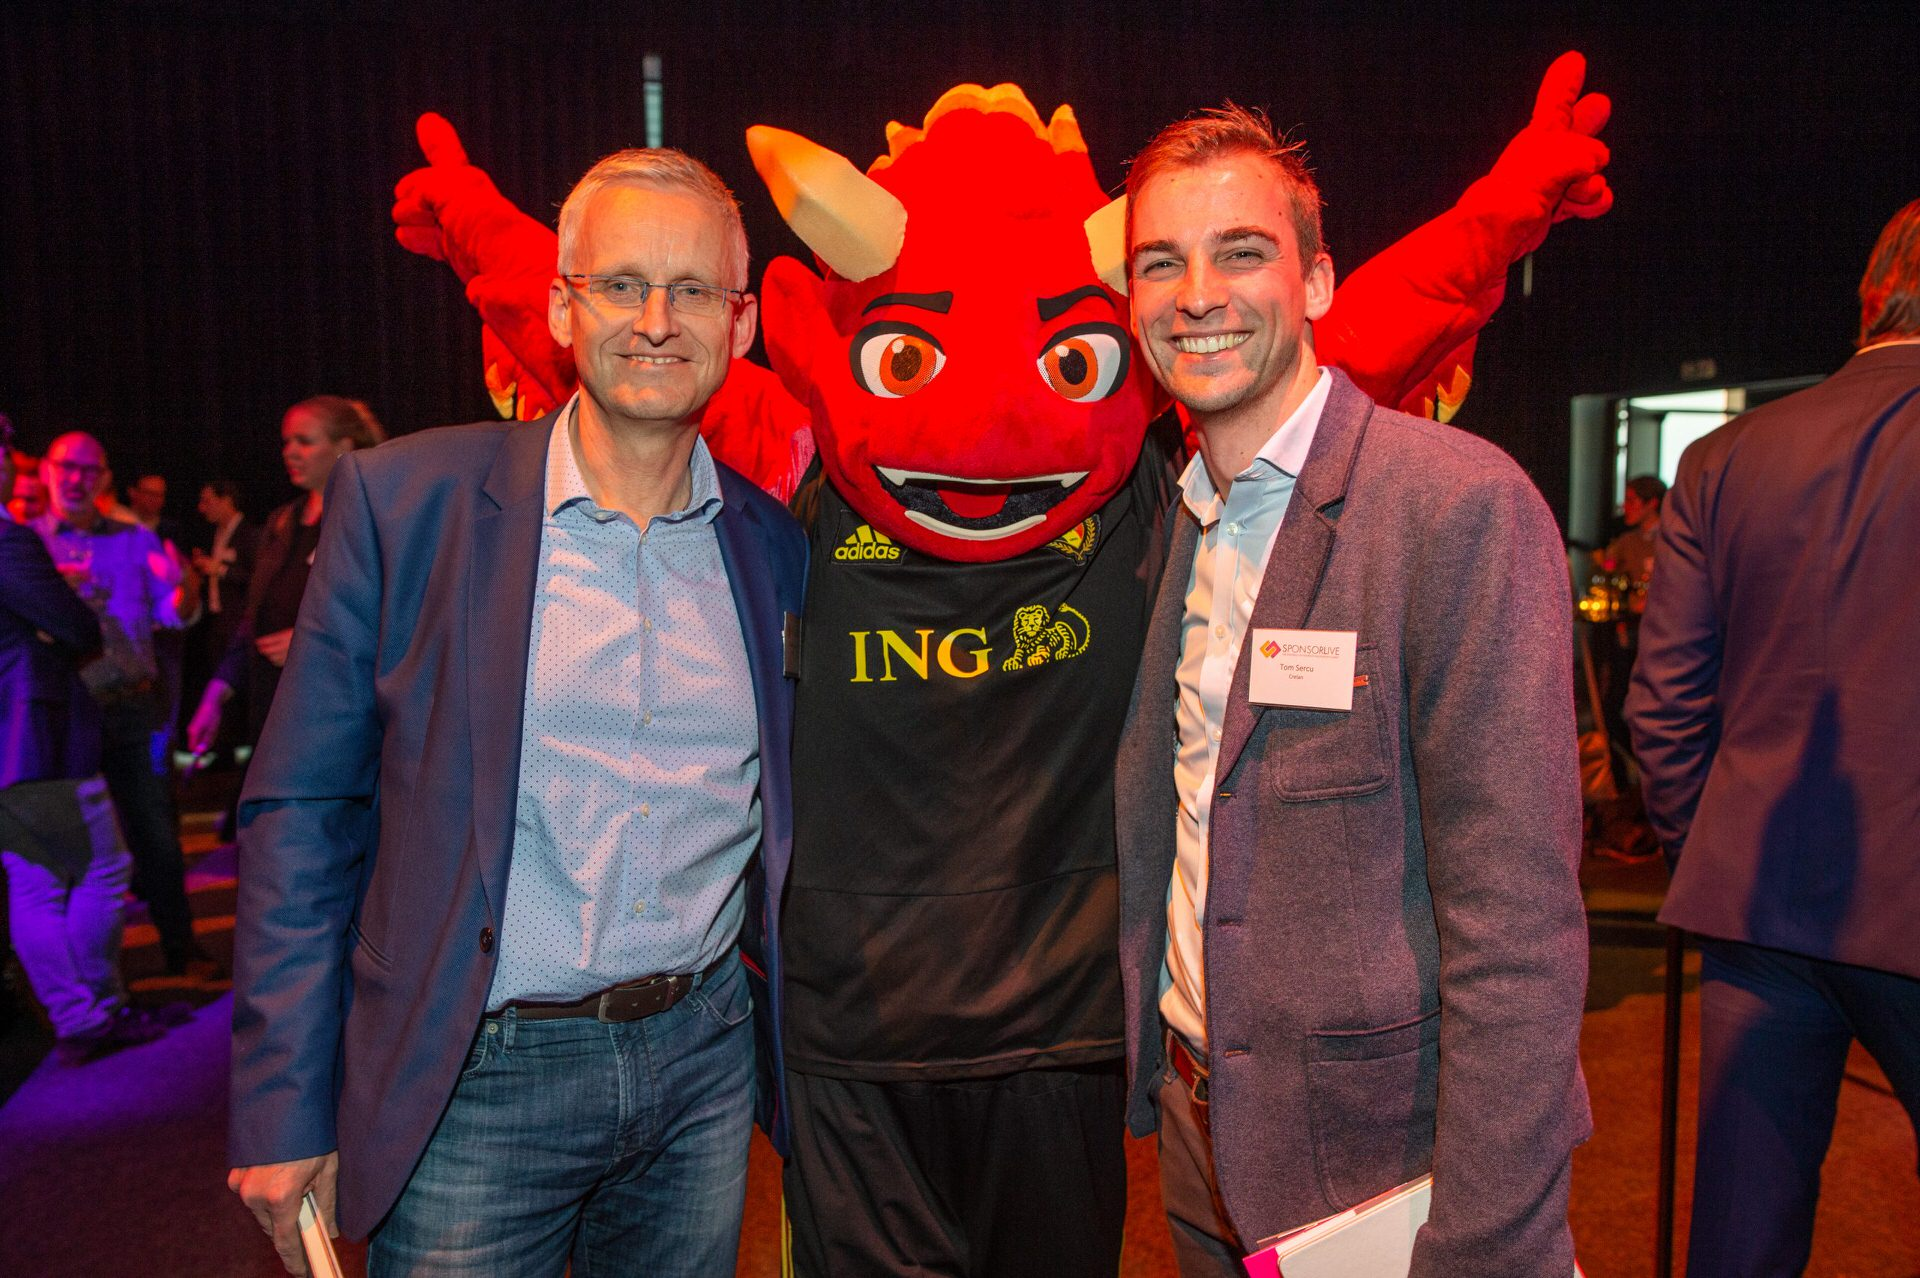 Guests with ING RED mascot during the dinner at SponsorLive